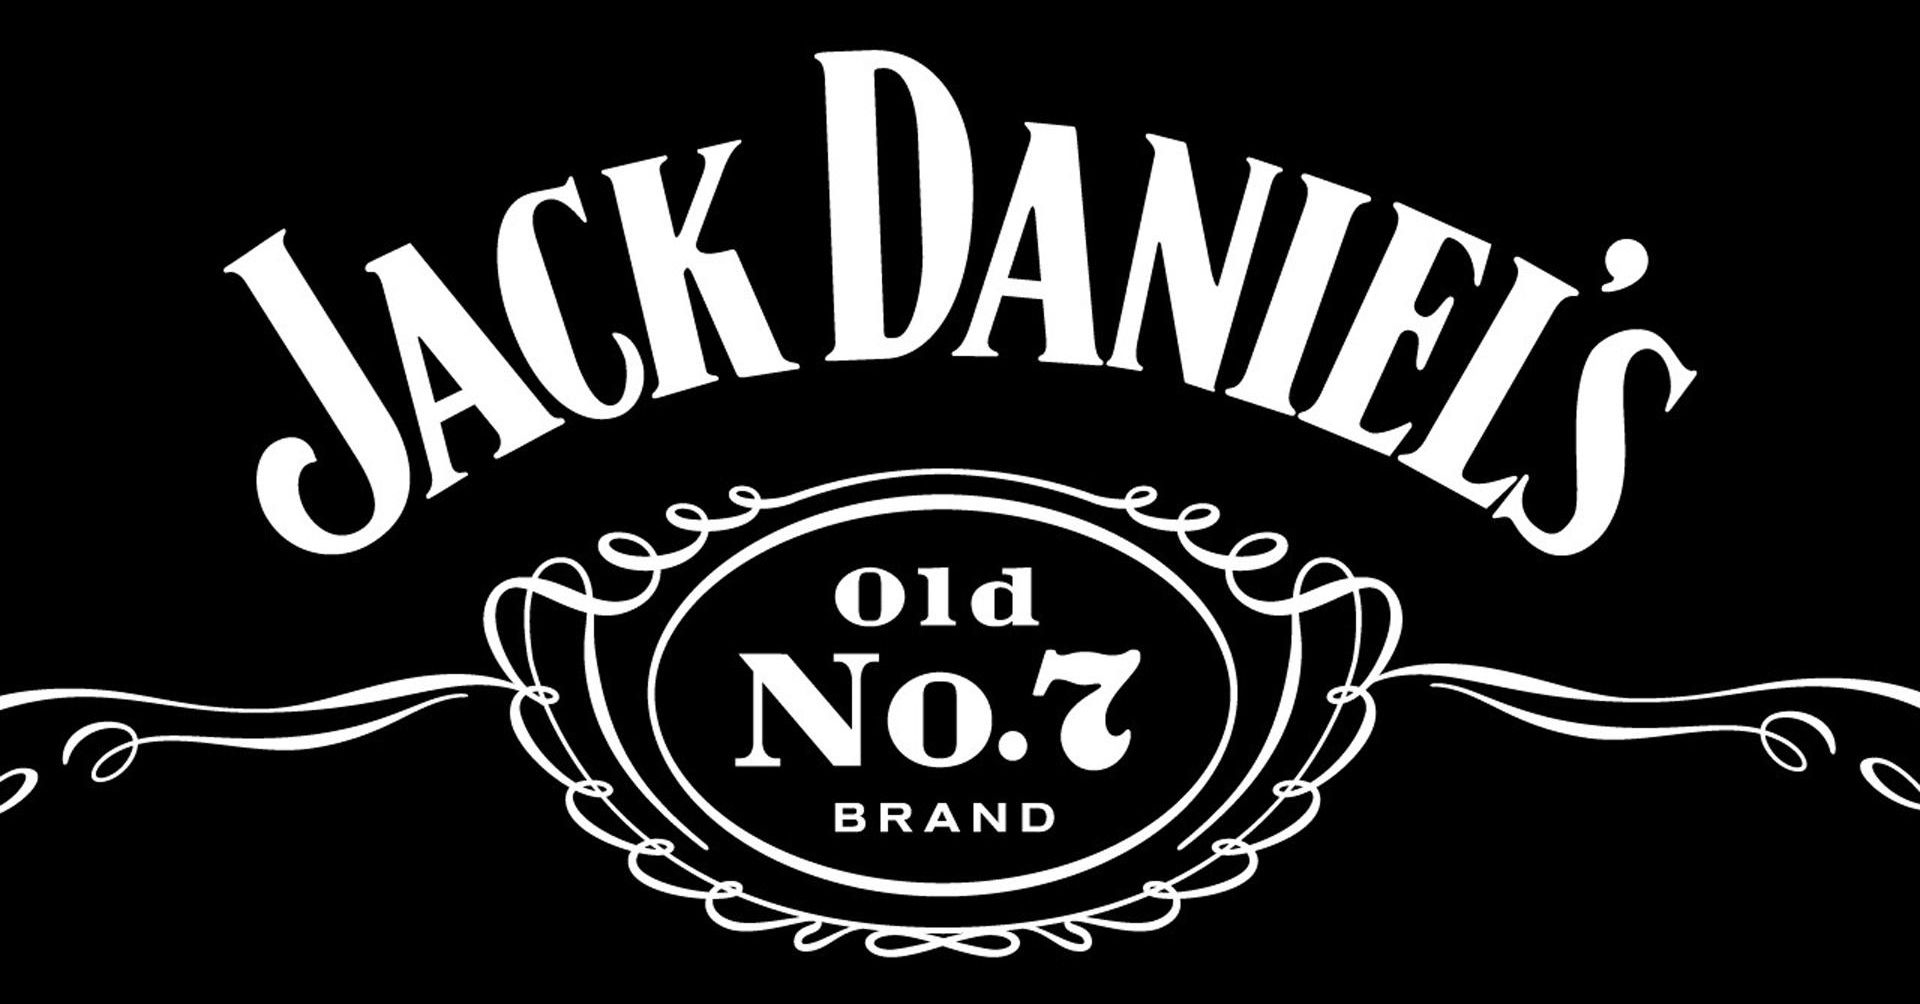 Meaning Jack Daniels logo and symbol history and evolution